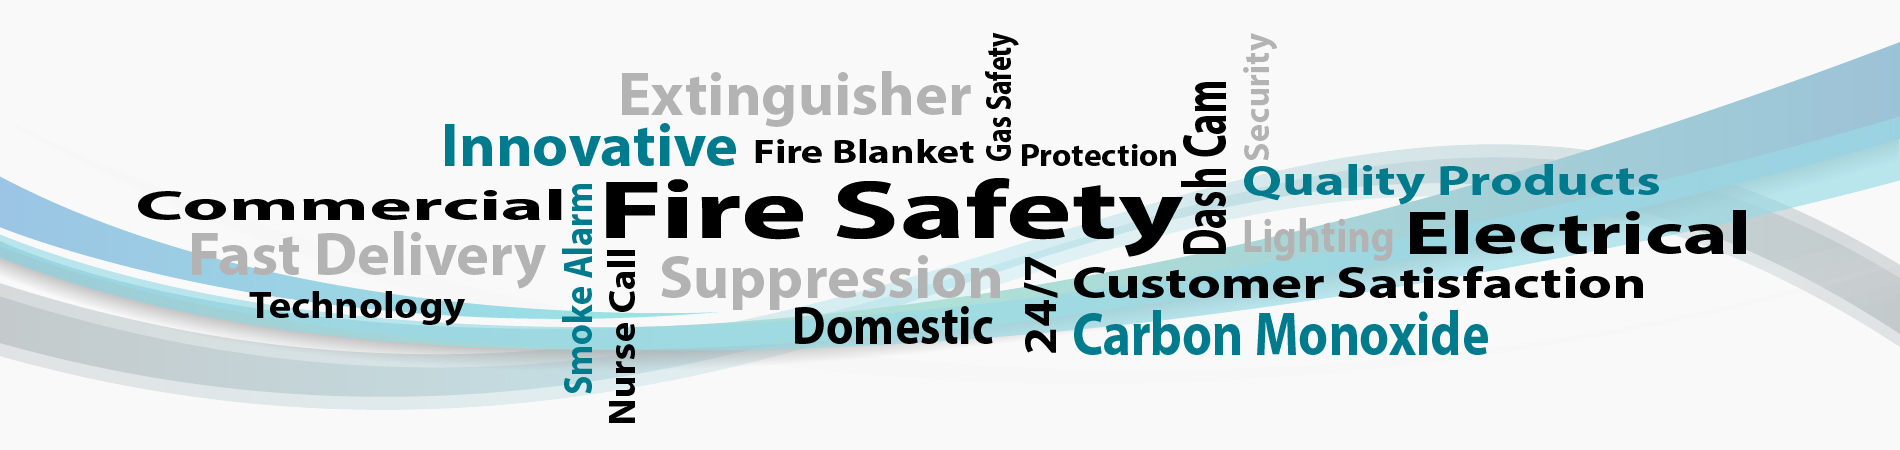 Fire Safety, Security, Lighting and Homeware